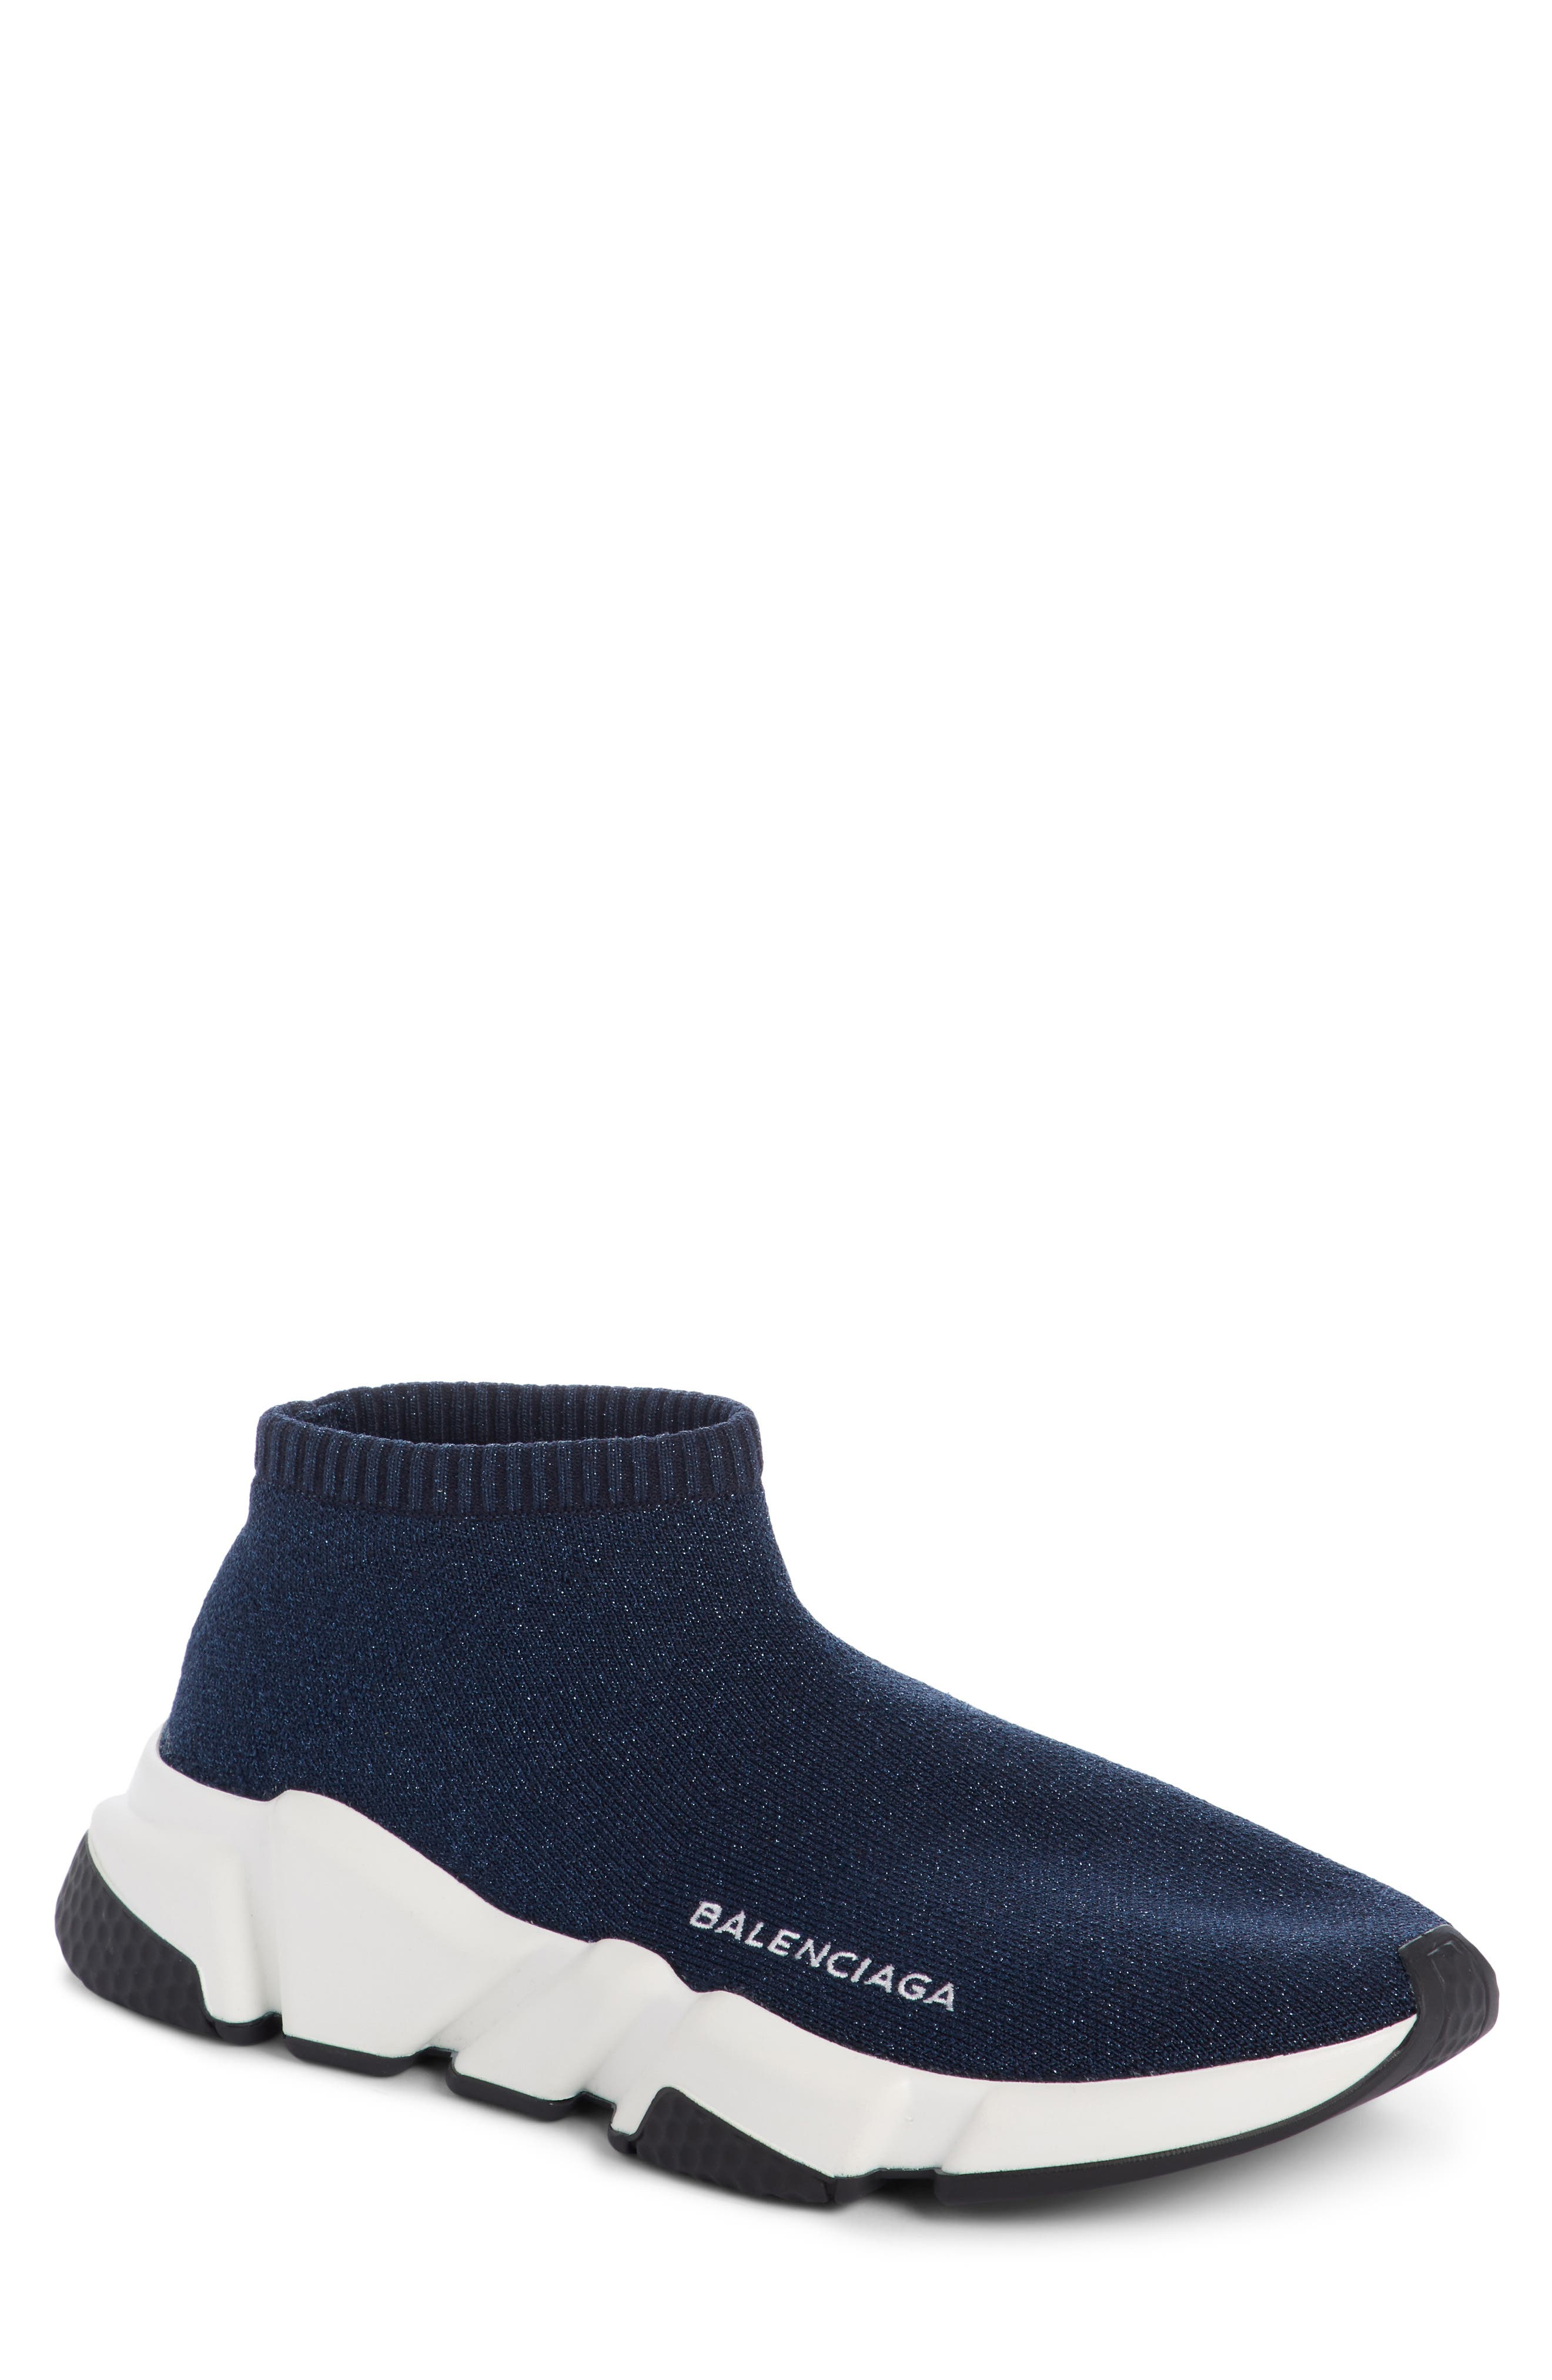 Low Speed Sneaker,                         Main,                         color, MIDNIGHT BLUE